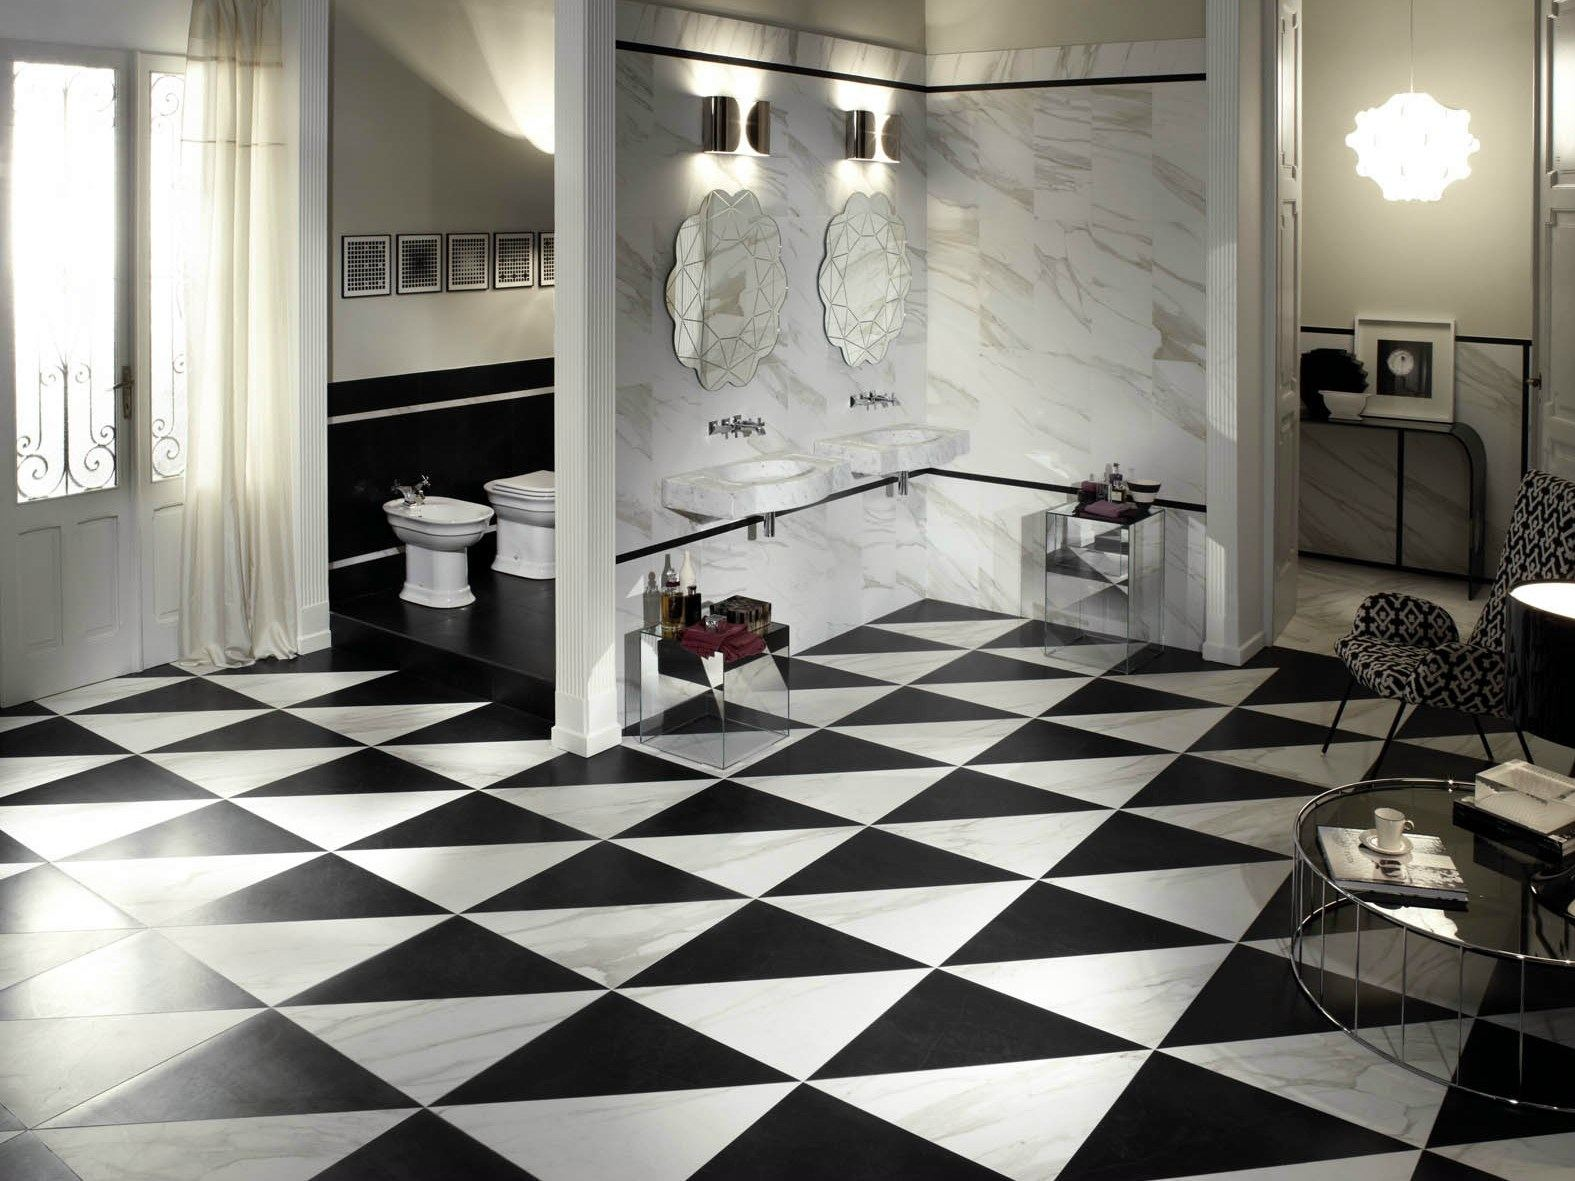 rev tement de sol en gr s c rame effet marbre evolutionmarble by marazzi. Black Bedroom Furniture Sets. Home Design Ideas